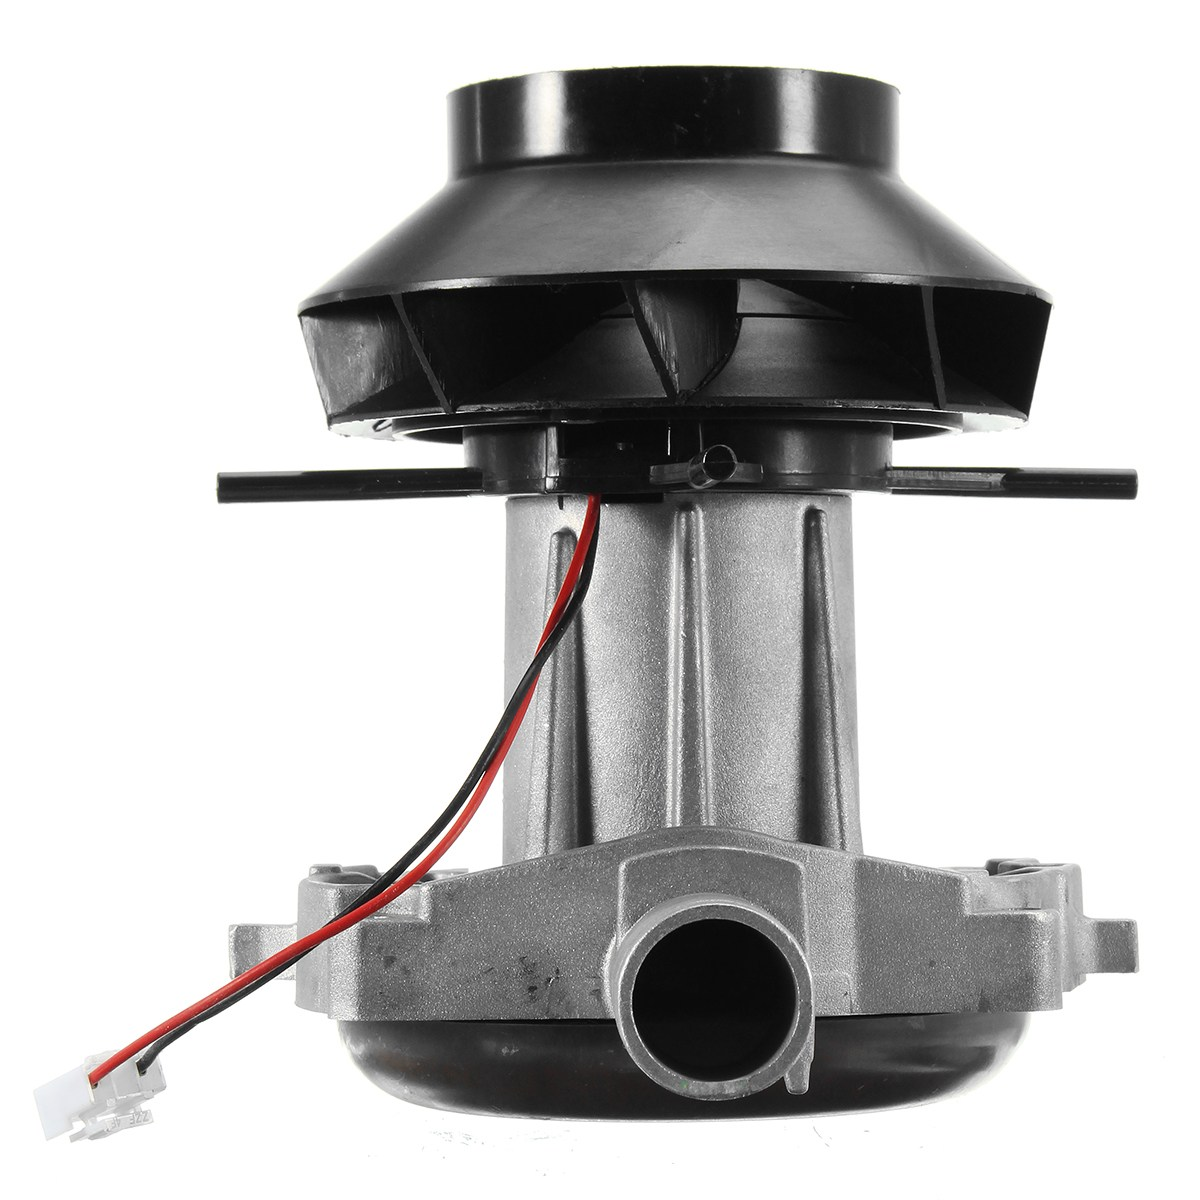 New 12V 24V Blower Motor Combustion Air Fan For Webasto Eberspacher D4 Air Devr Parking Heater Replacement